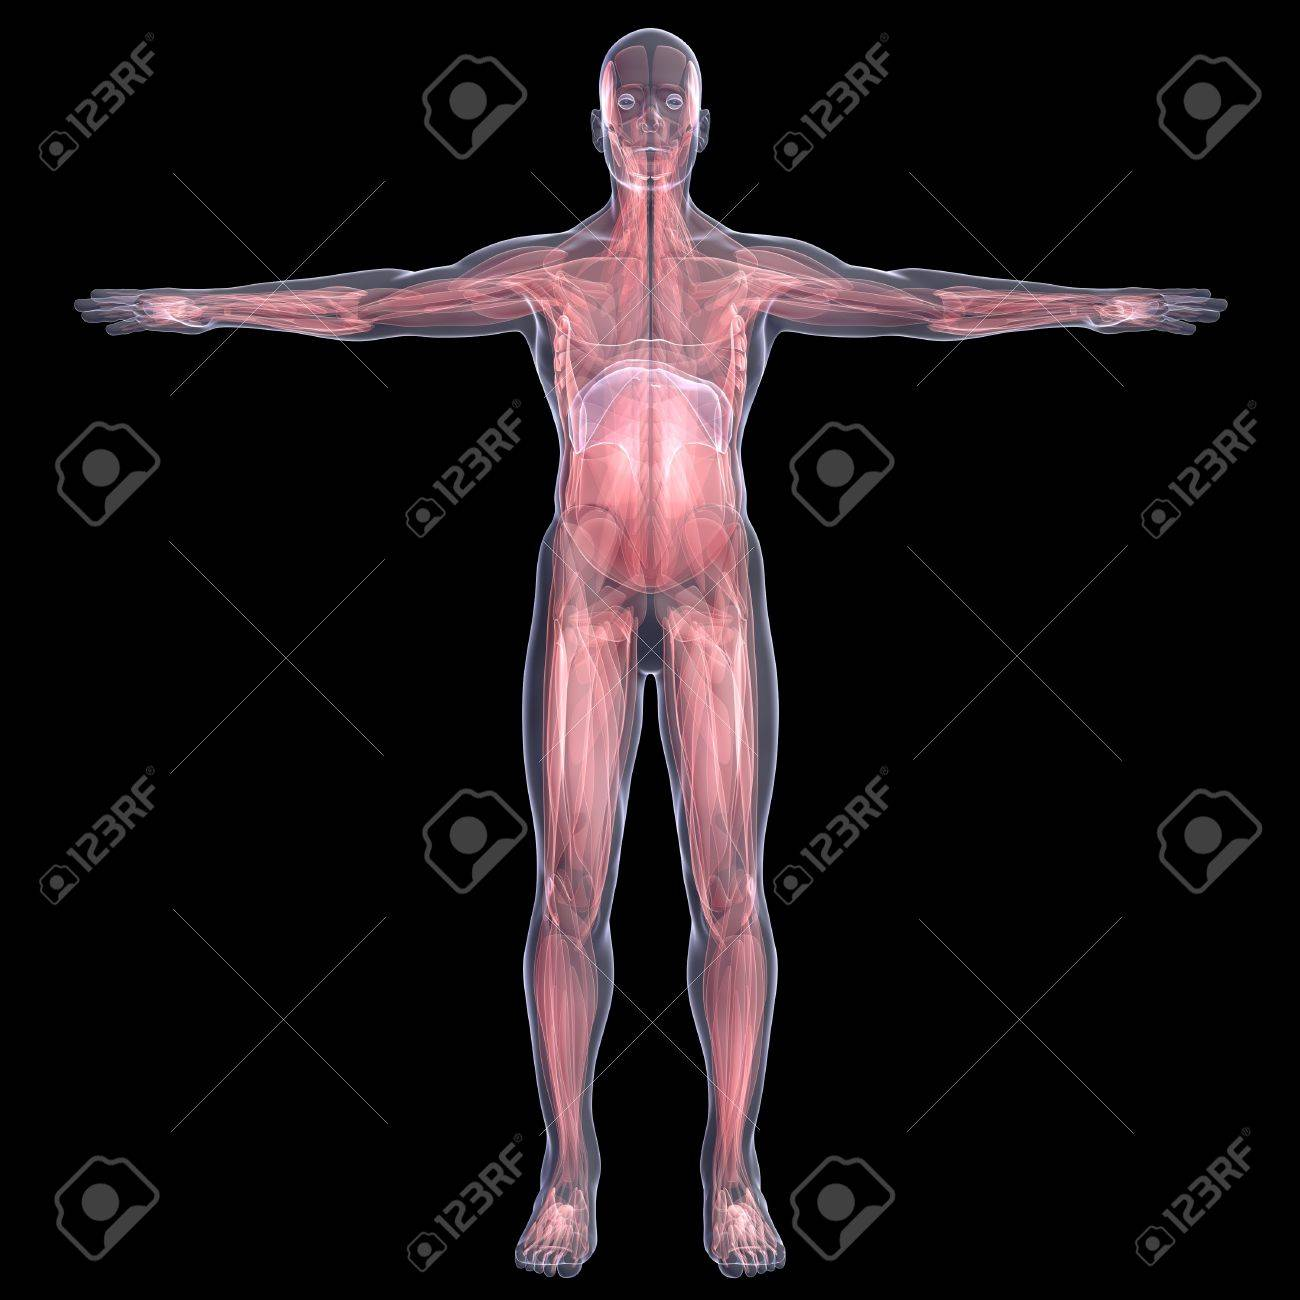 X-Ray picture of a person  muscle  Isolated render on a black background Stock Photo - 19443550